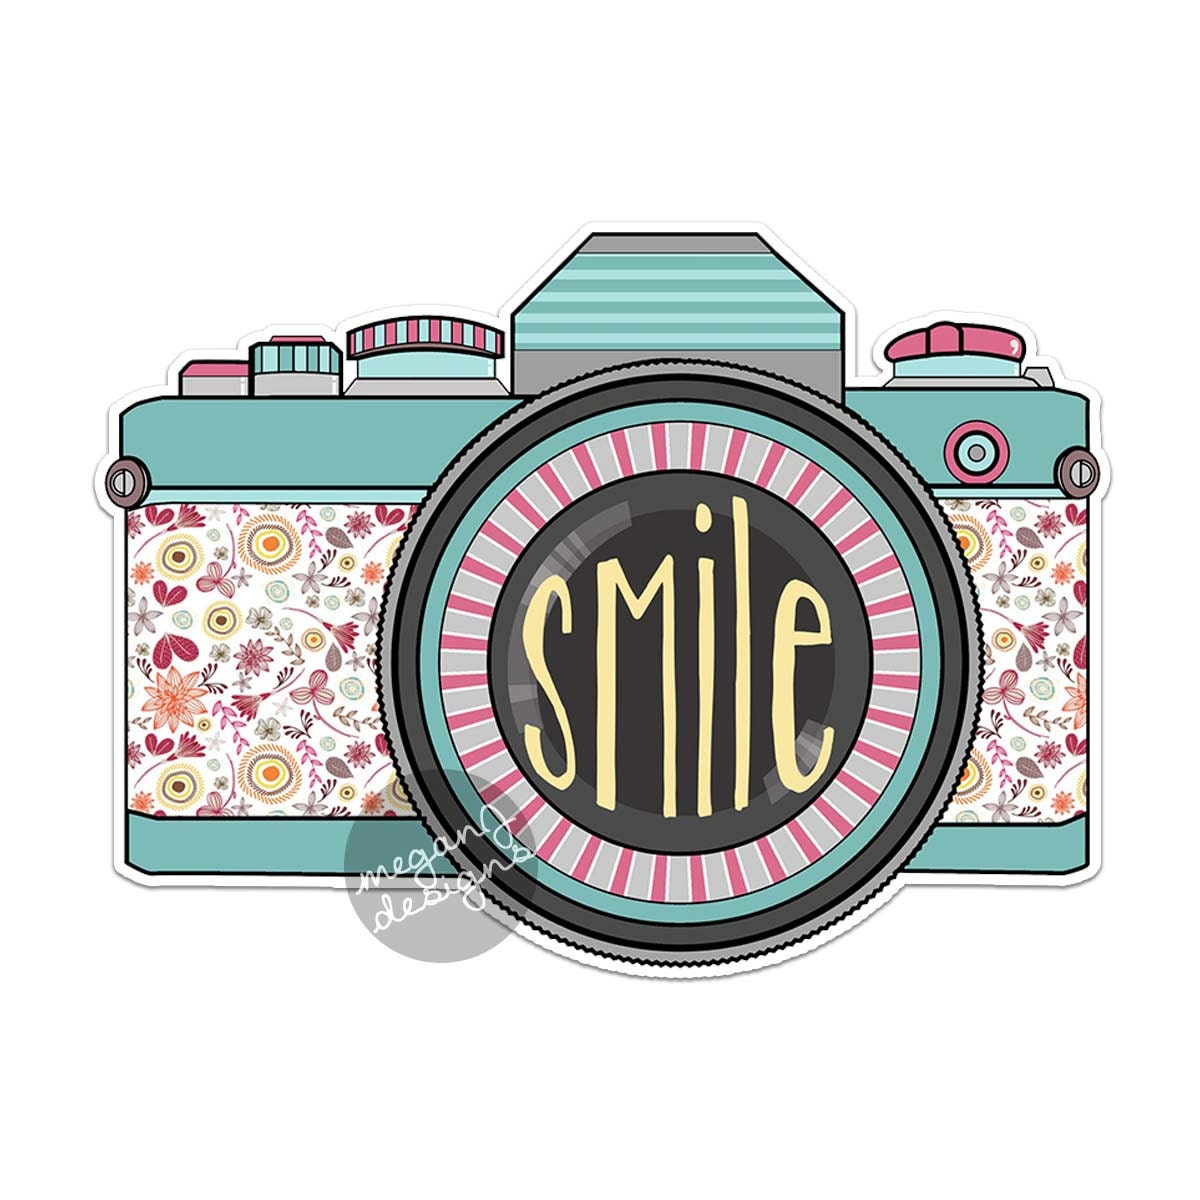 Bumper sticker api design -  Retro Camera Decal Colorful Vintage Retro Camera Bumper Sticker Laptop Decal Teal Vintage Flowers Smile